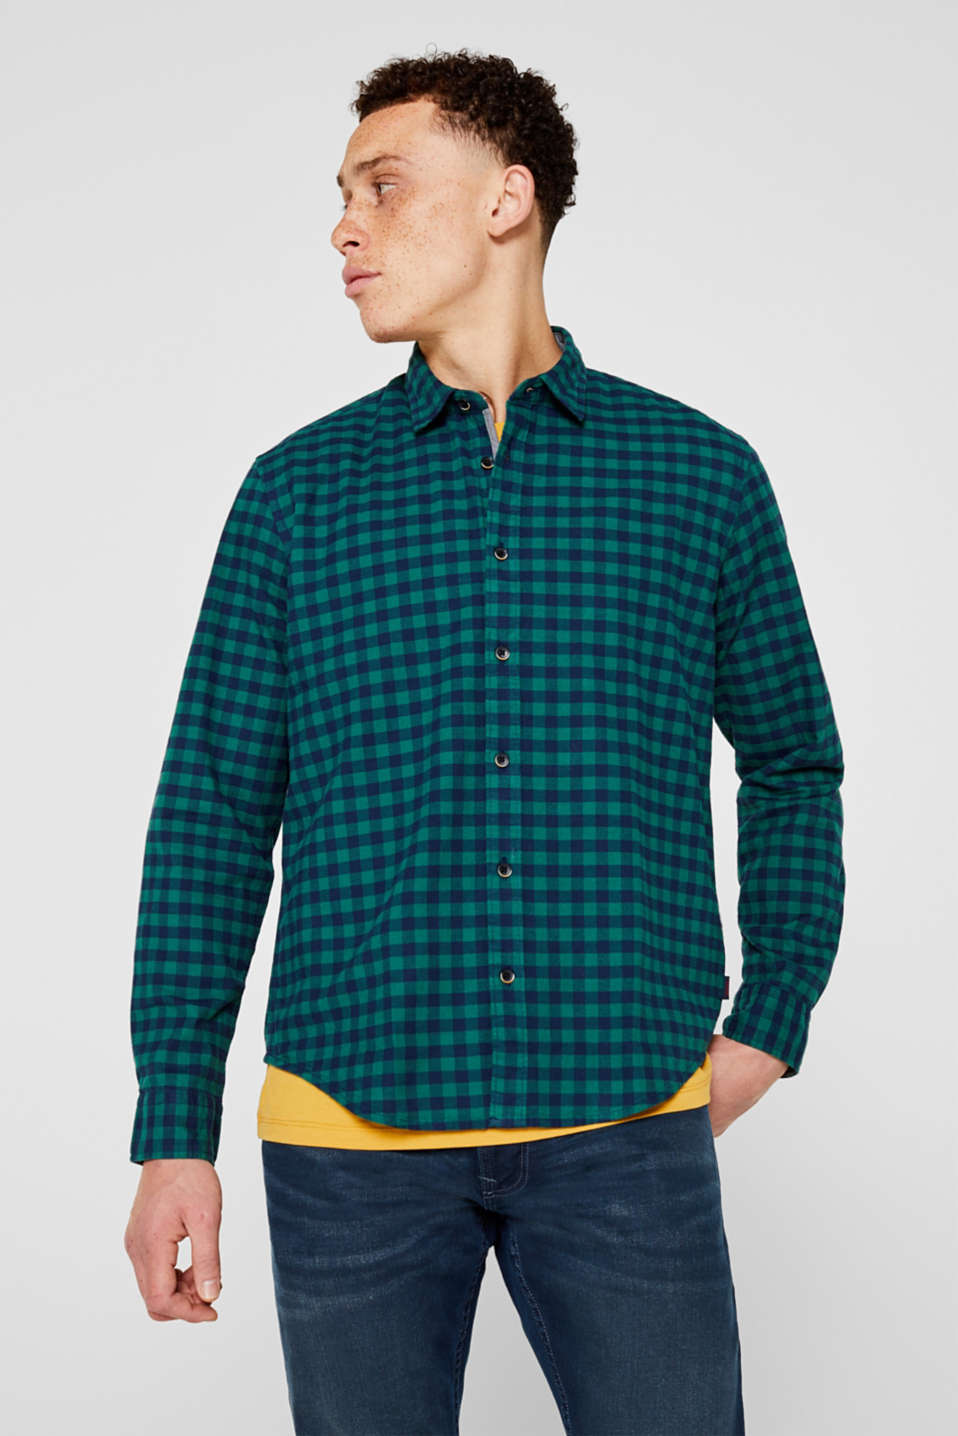 Flannel shirt with checks, made of stretch cotton, DARK GREEN, detail image number 0